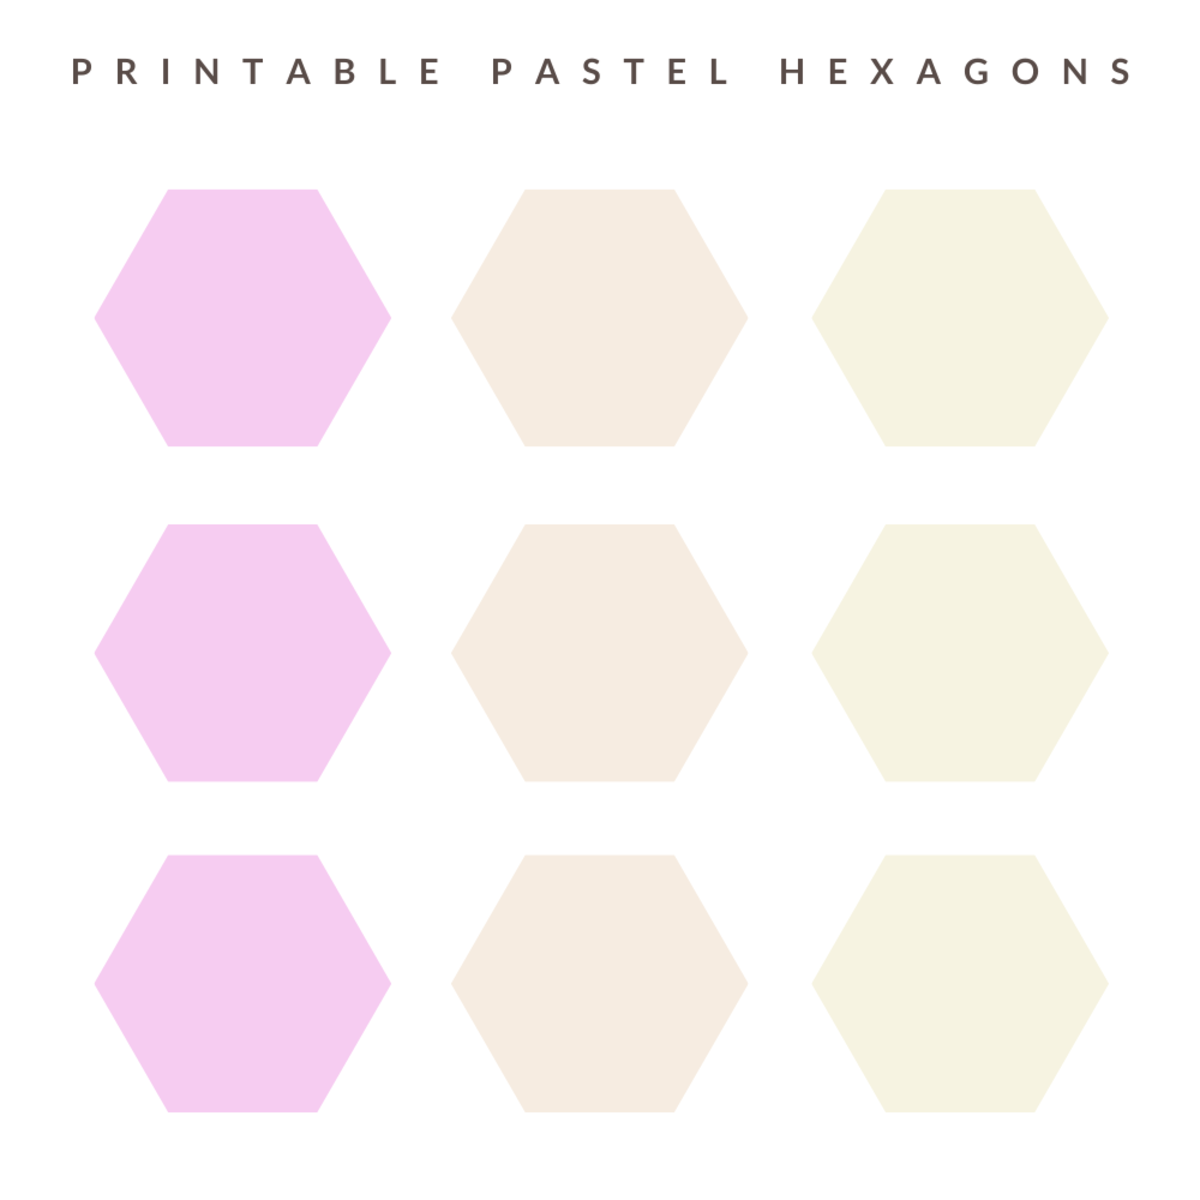 Here are some printable hexagons, perfect for adding to-do lists to!